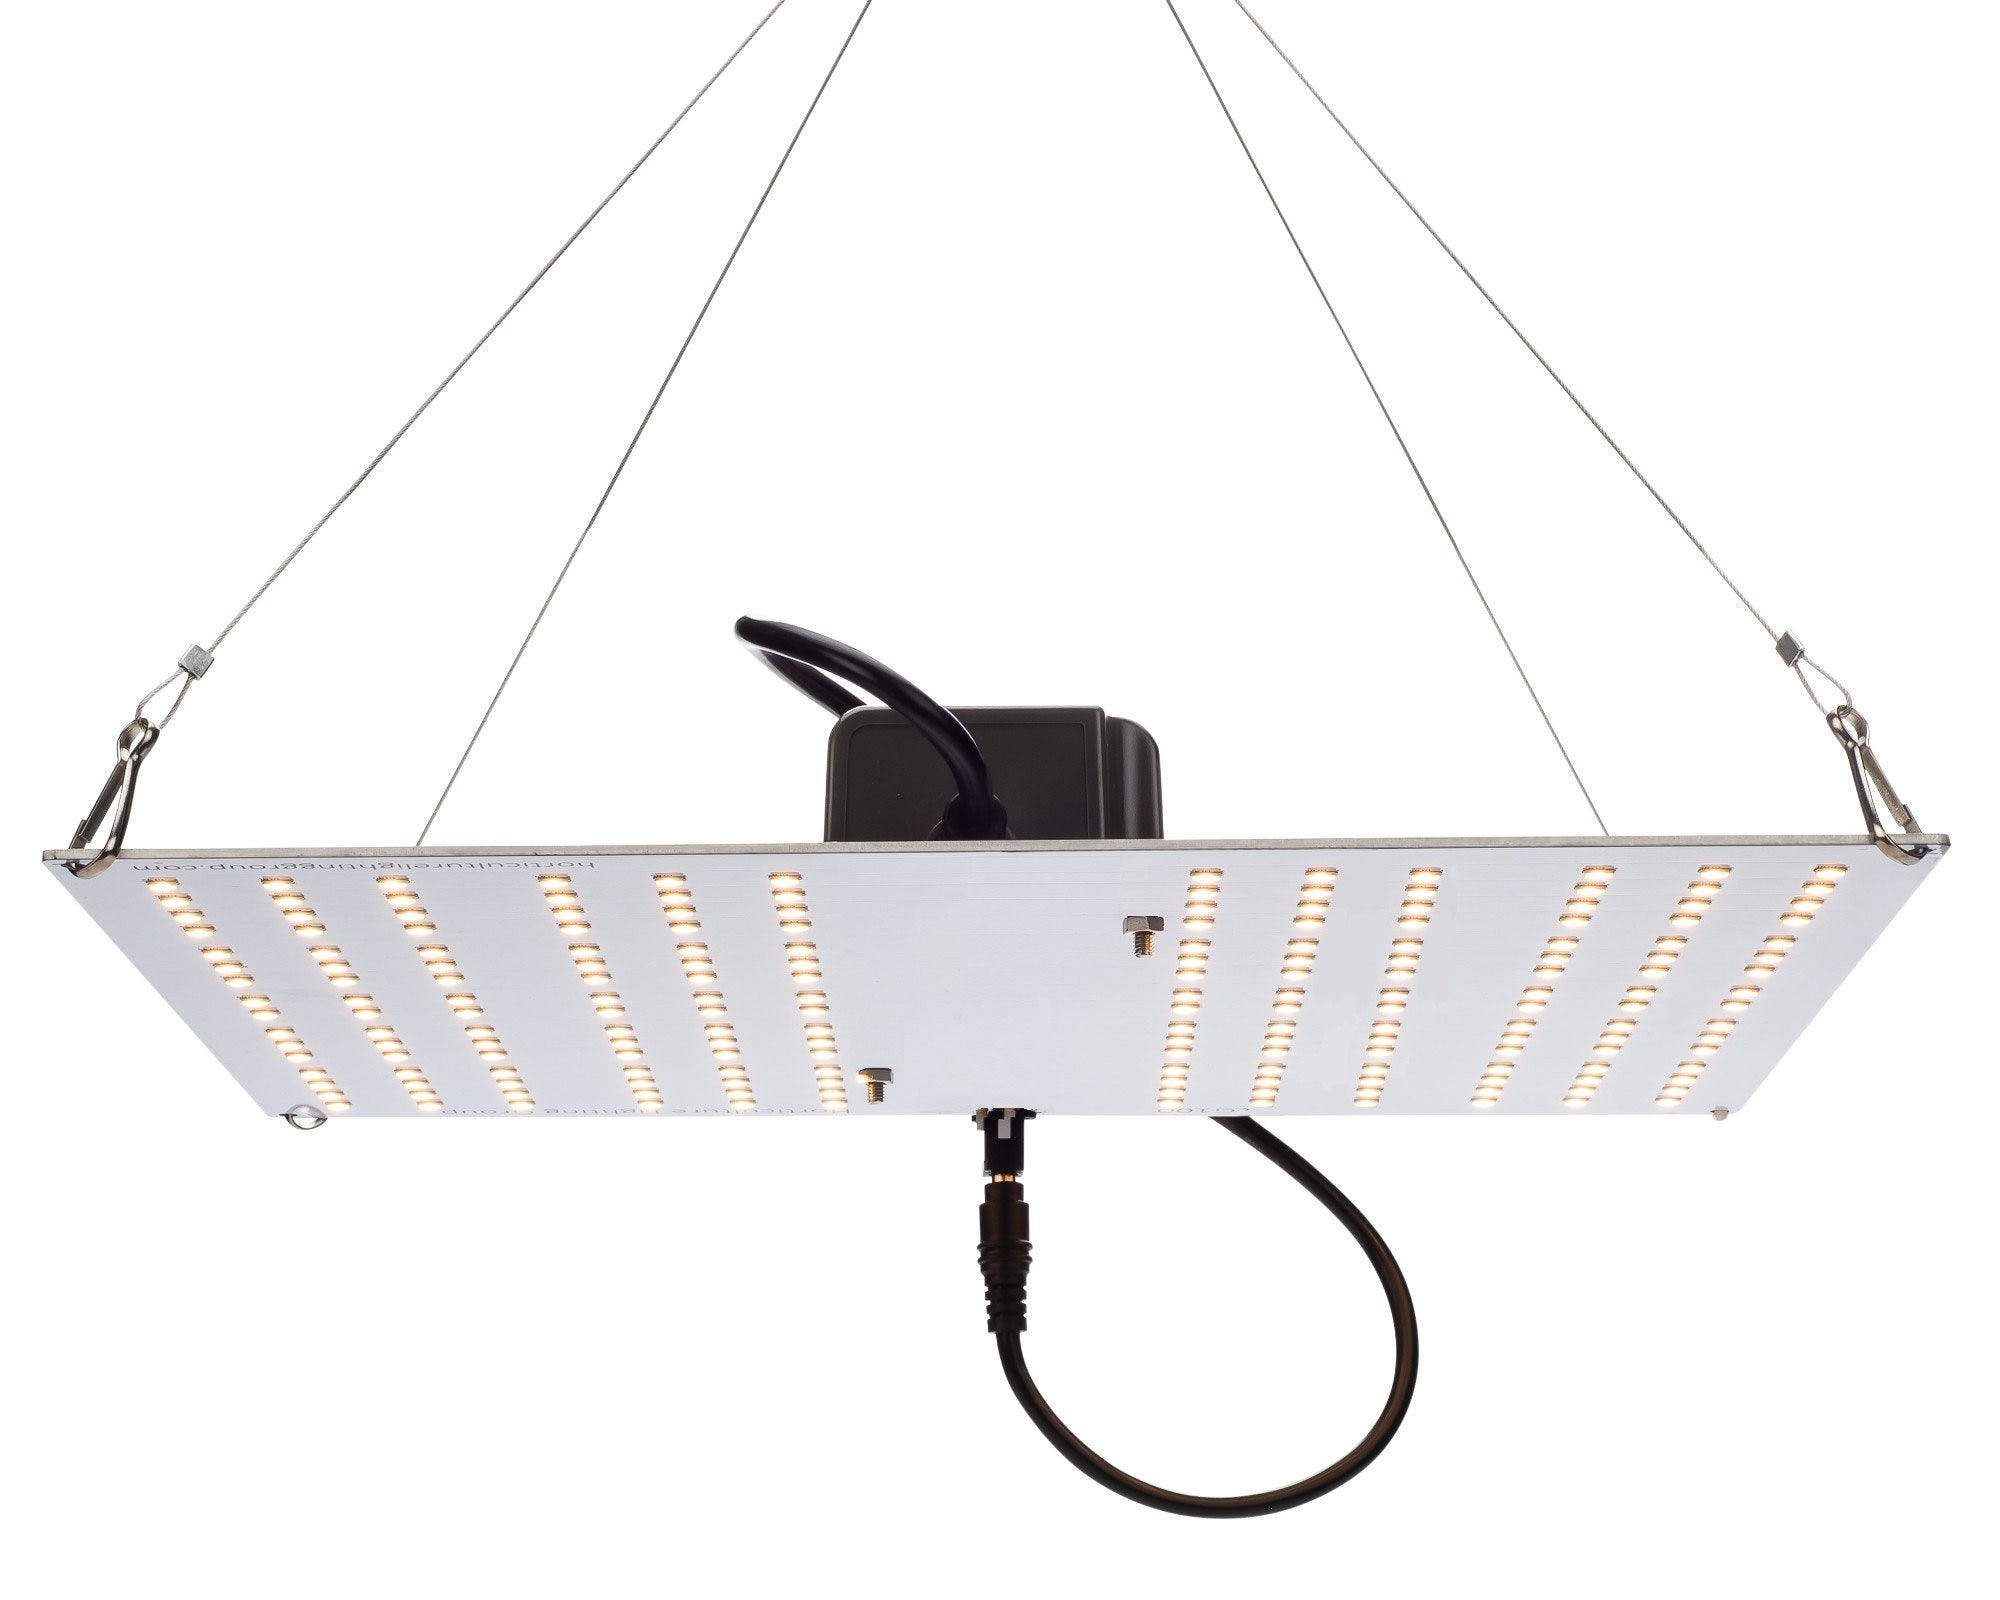 Horticulture Lighting Group HLG 100 V2 LED - 100W 1 Quantum Boards The HLG 100 V2 uses Horticulture Lighting Group's custom designed High efficiency white light Quantum Boards. With a total of 192 pcs Samsung LM301B LED's, this fixture produces 15,000+ Lumens with just 95 Watts of power. Equivalent to 220W T5 or 300W CFL output or 200W metal halide.lide. Comes in either 3000K or 4000K spectrums. TOP FEATURES High efficiency Samsung LM301B LED White Light Full Spectrum for better results Reliable passive cooled design Better canopy light penetration with diffused light Non-Dimmable Meanwell Power Supply included with NEMA 1-15p plug SPECIFICATIONS Power 95 Watts Voltage Range 90-264 VAC LED 192 pcs Samsung LM301B Flowering Footprint 2'X2' Veg Footprint 3'X3' System Efficiency 170 Lm/W System PPF Efficacy 2.45 μmol/joule Total output 235 PPF Dimensions 12.8  x 11